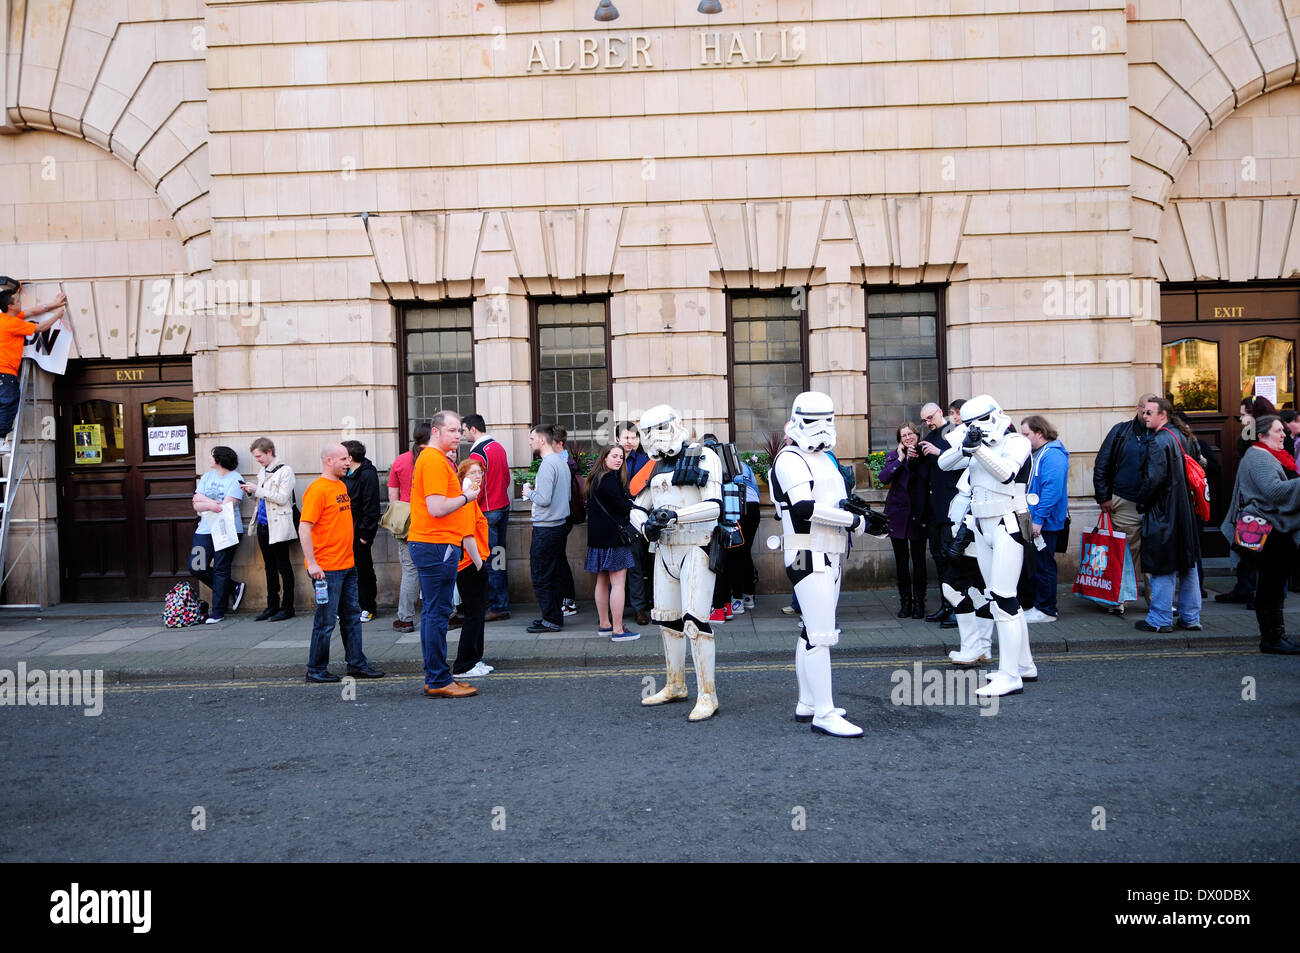 Nottingham, UK. 16th Mar, 2014. 16th March 2014.Hundreds of Sci-Fi fans descended on Nottingham's Albert Hall for first ever EM-CON convention .Guest included Craig Charles, Ben Miller, Danny John-Jules, and a host of other stars.Albert Hall, Star Wars stormtroopers. Credit:  Ian Francis/Alamy Live News - Stock Image